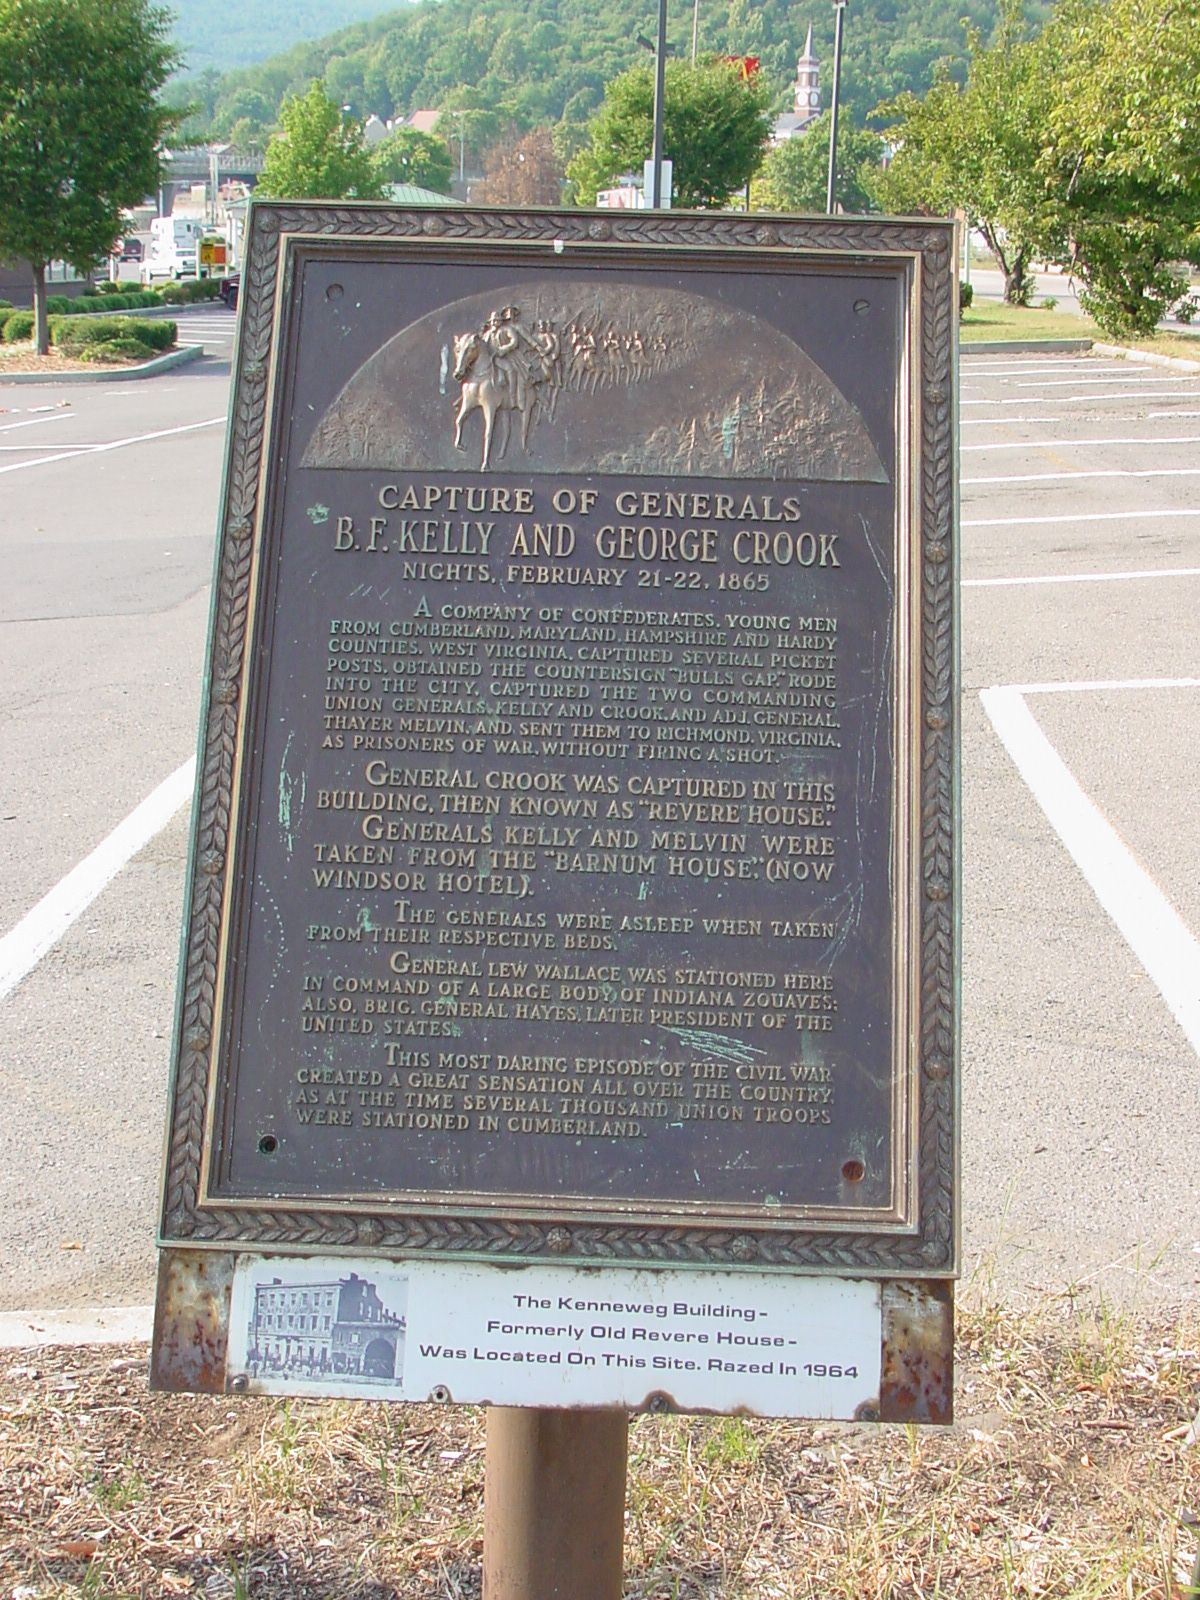 Capture of Generals Marker